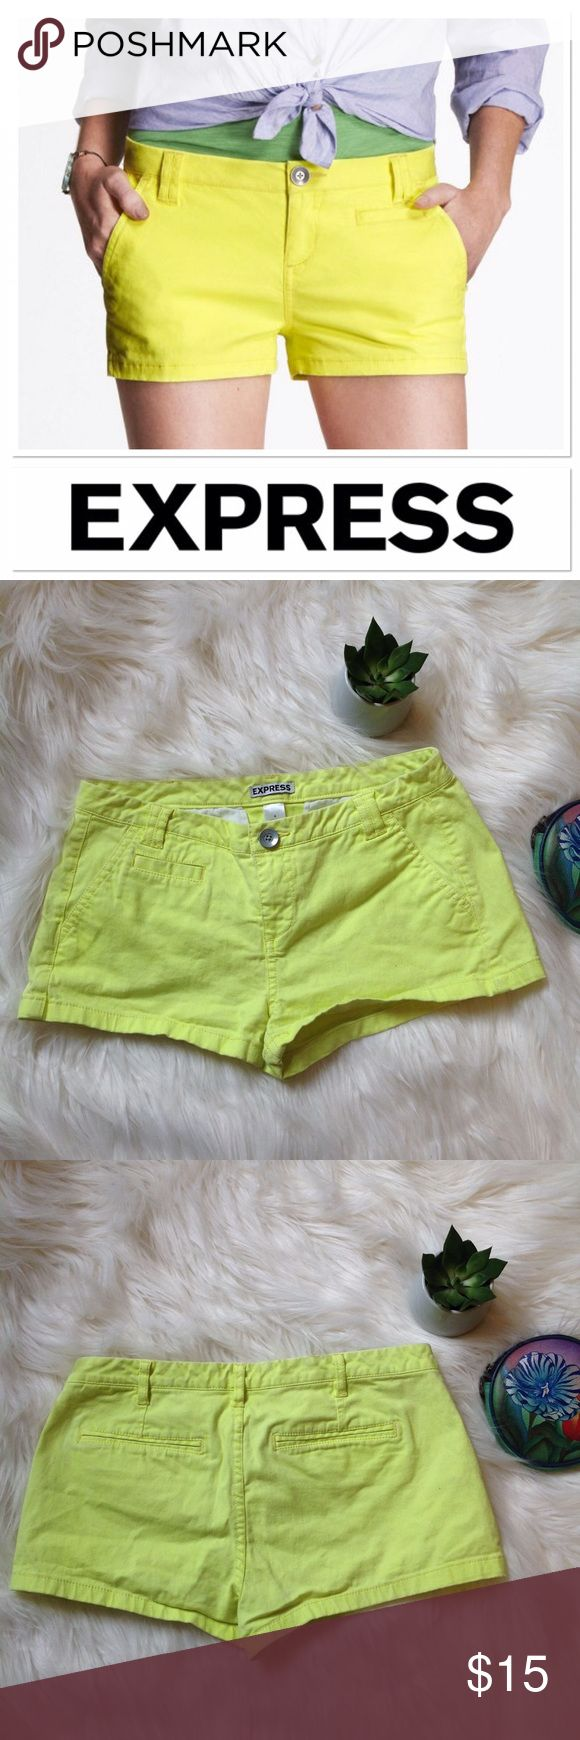 Express Neon Yellow shorts size 4 Express neon yellow shorts size 4. Perfect for hot summer days. Wear them at the beach with flip flops or dress them up with a nice top and heels. Very good condition! Express Shorts